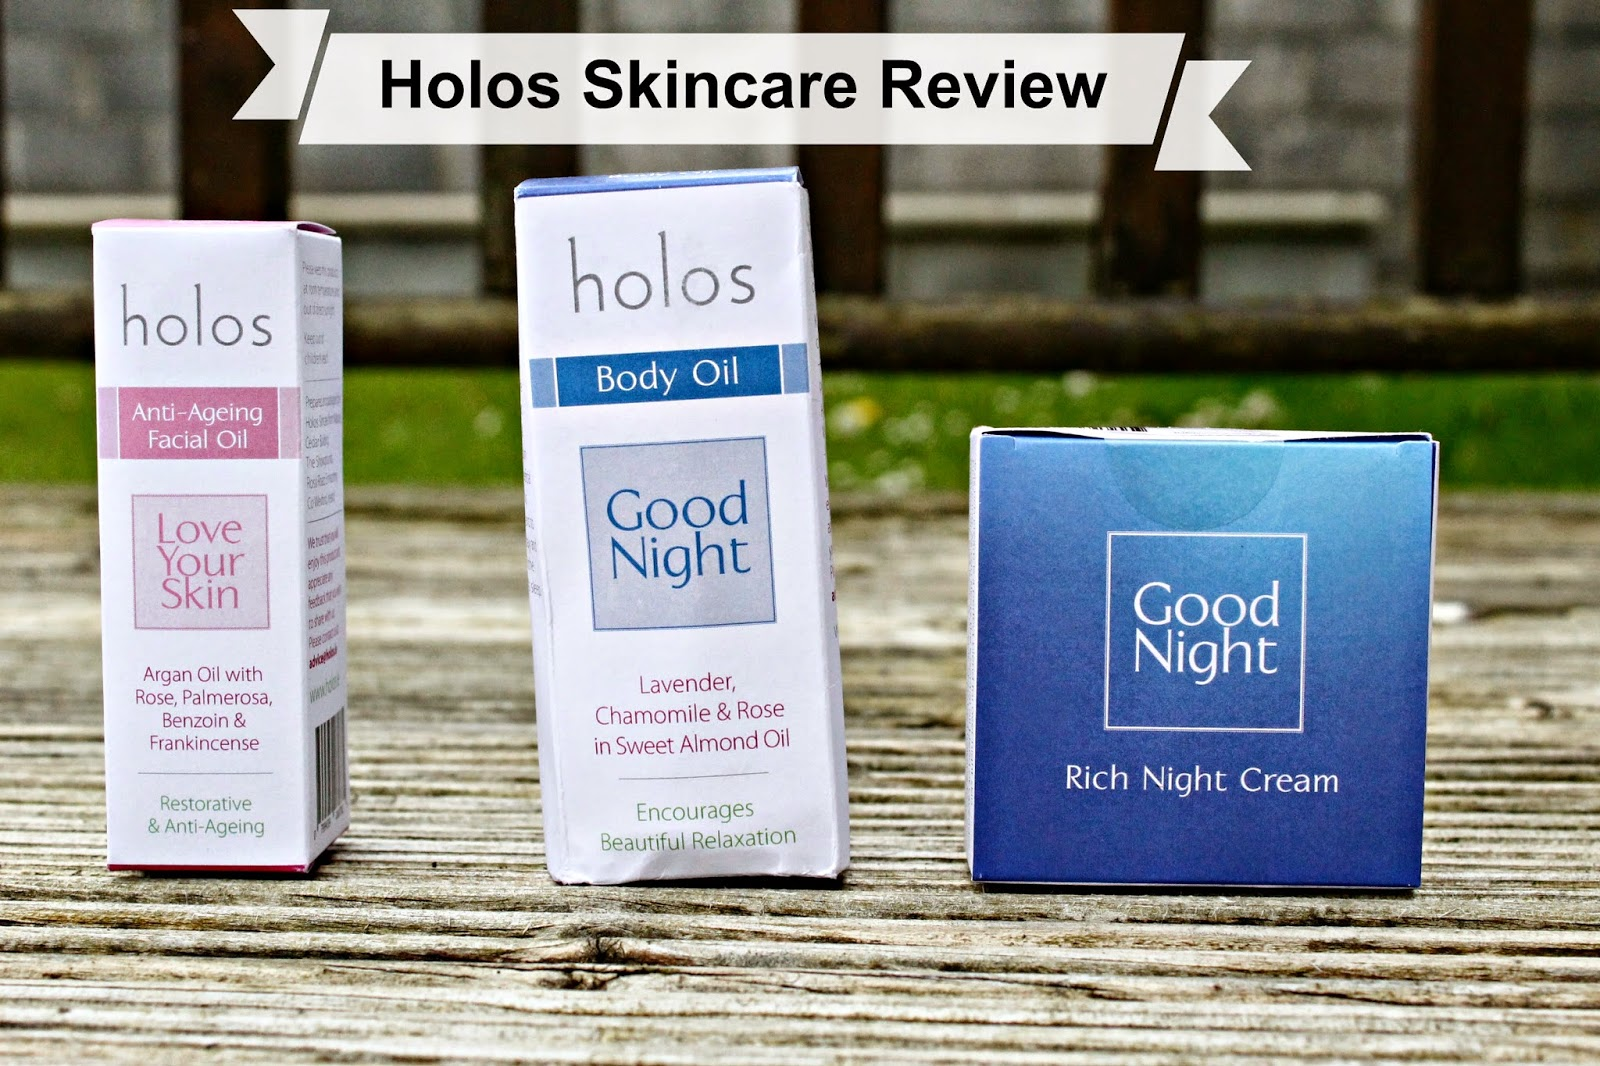 Holos Skincare Blog Review